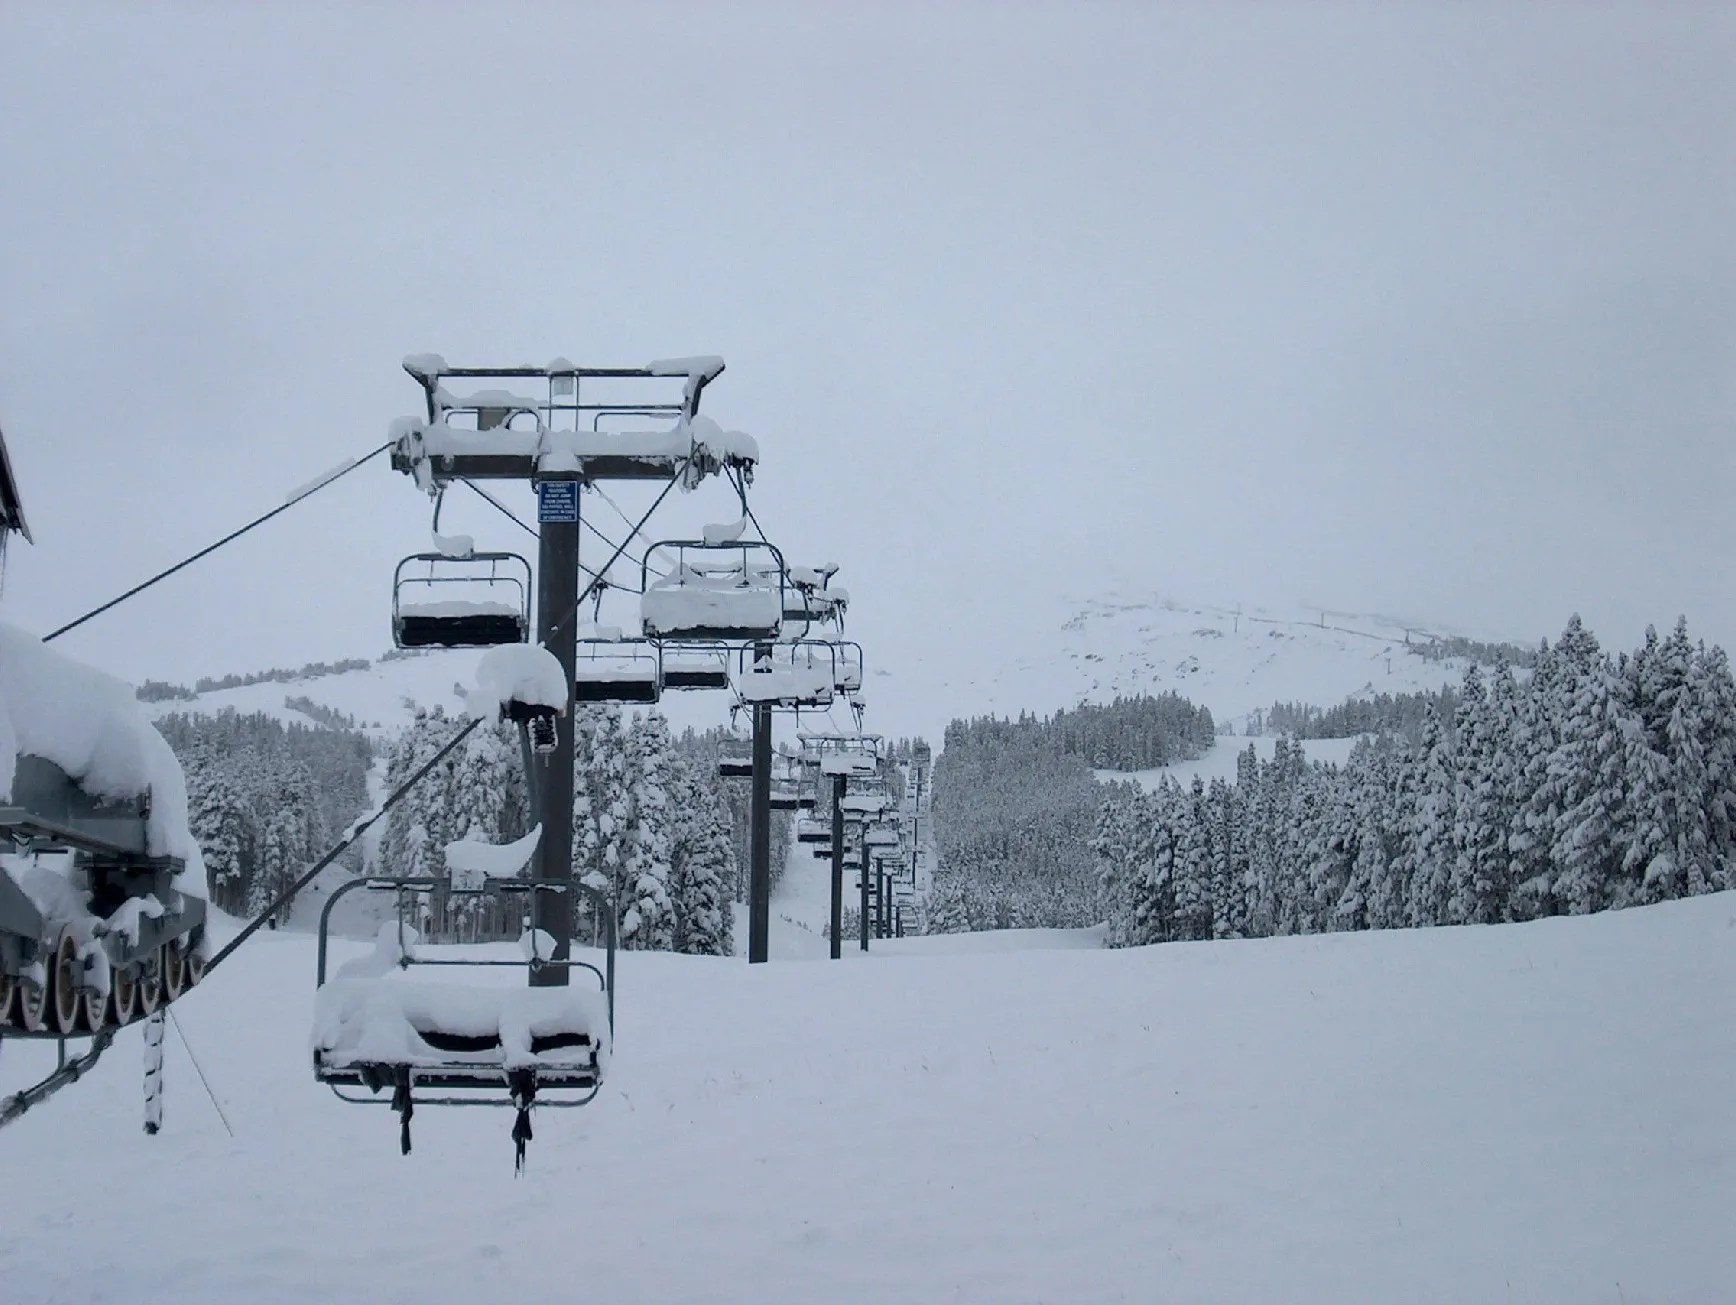 chair lift accident zero gravity replacement fabric electrical problems identified in fatal chairlift